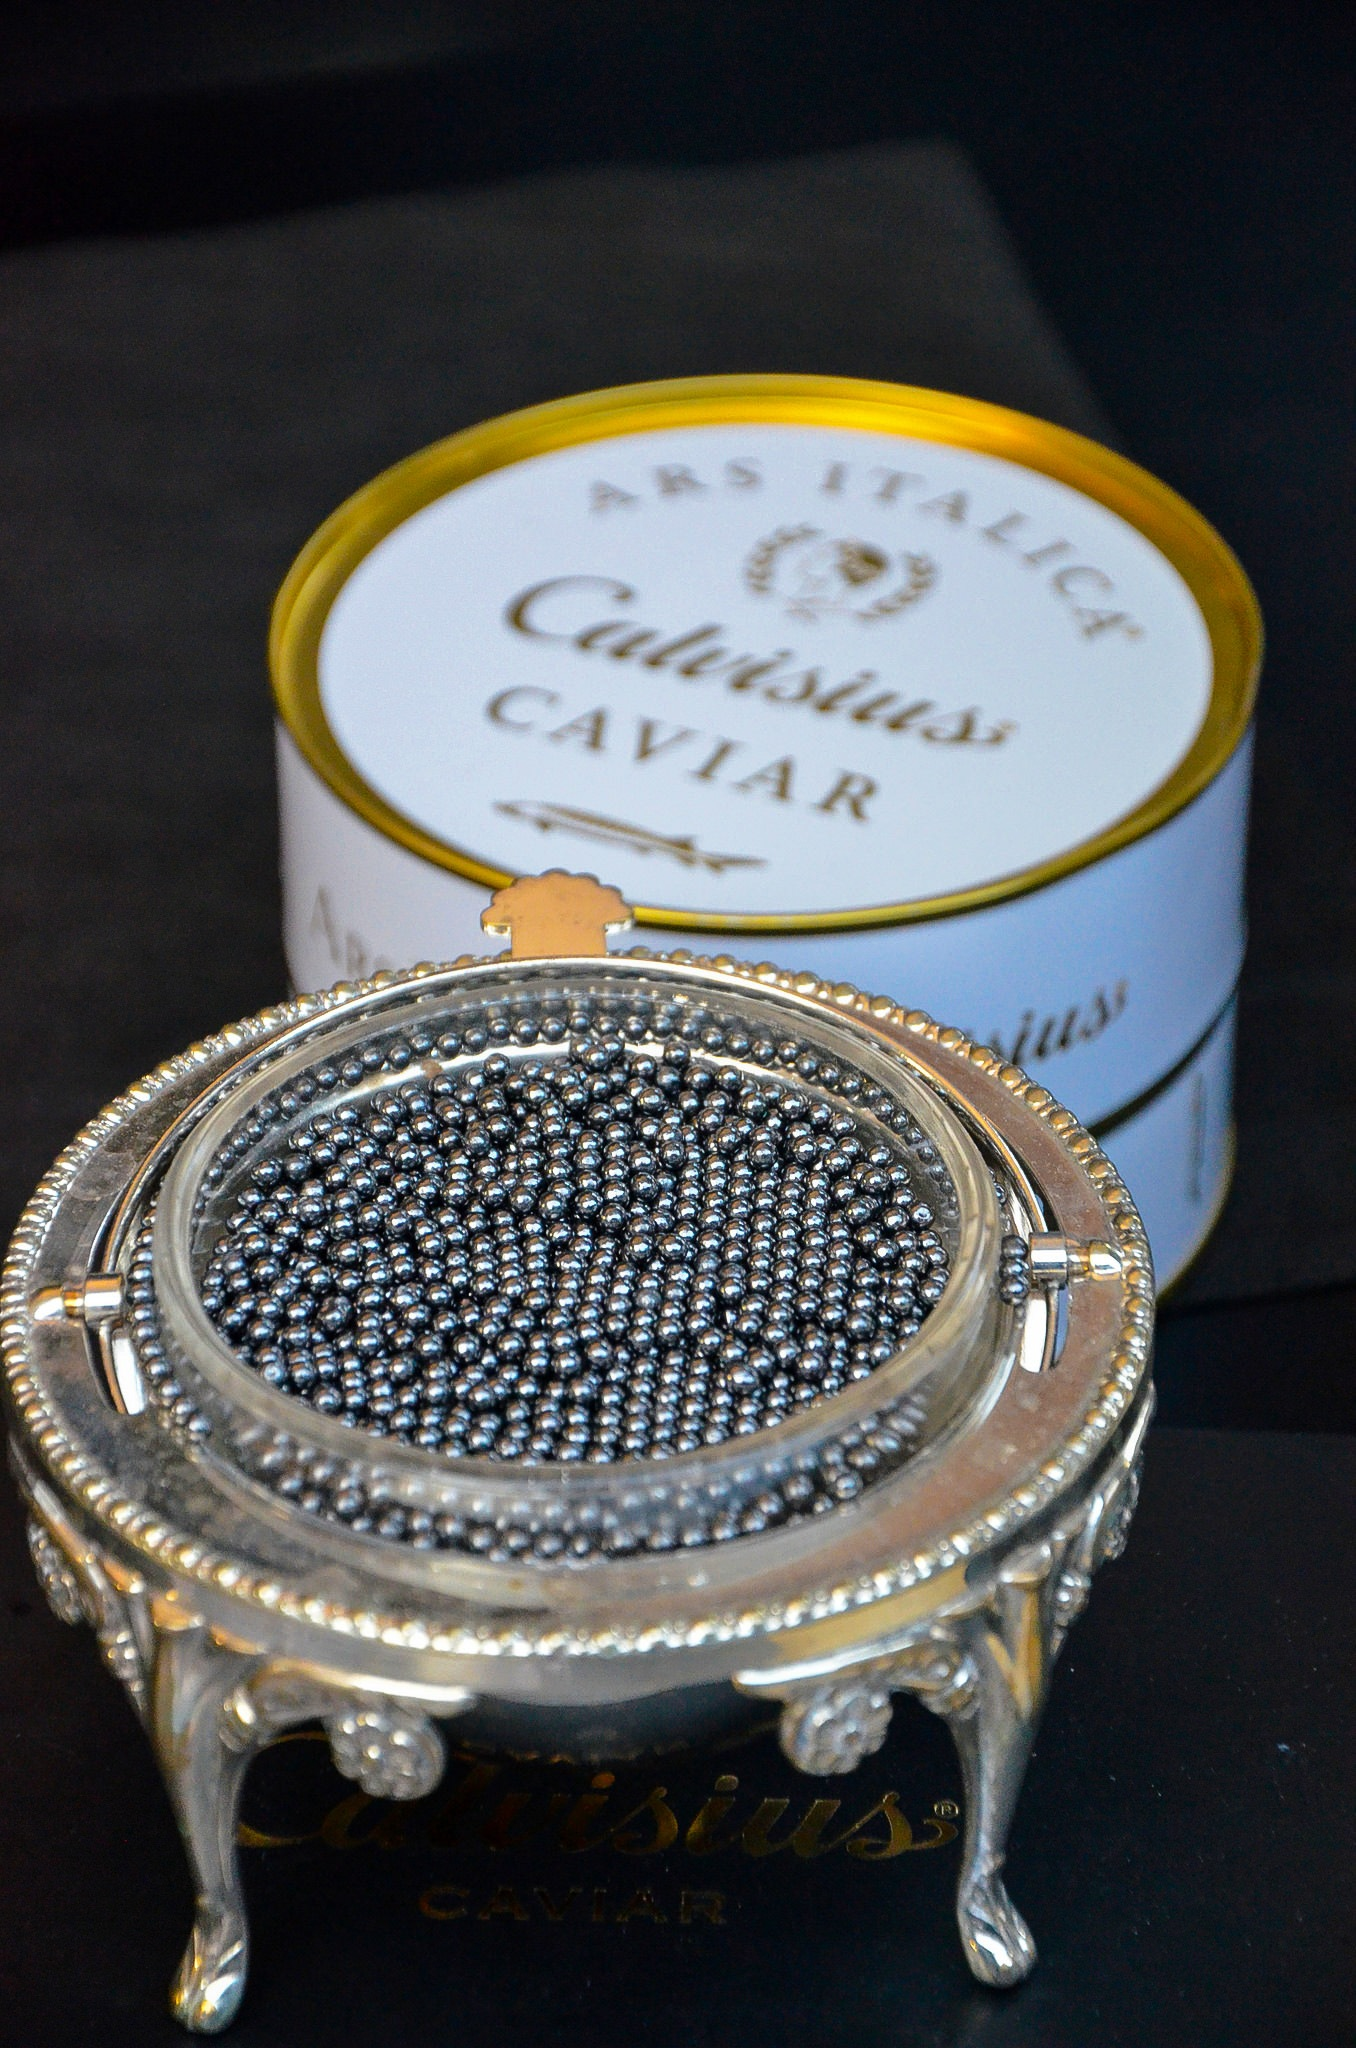 Caviar  by Pierina Mariani